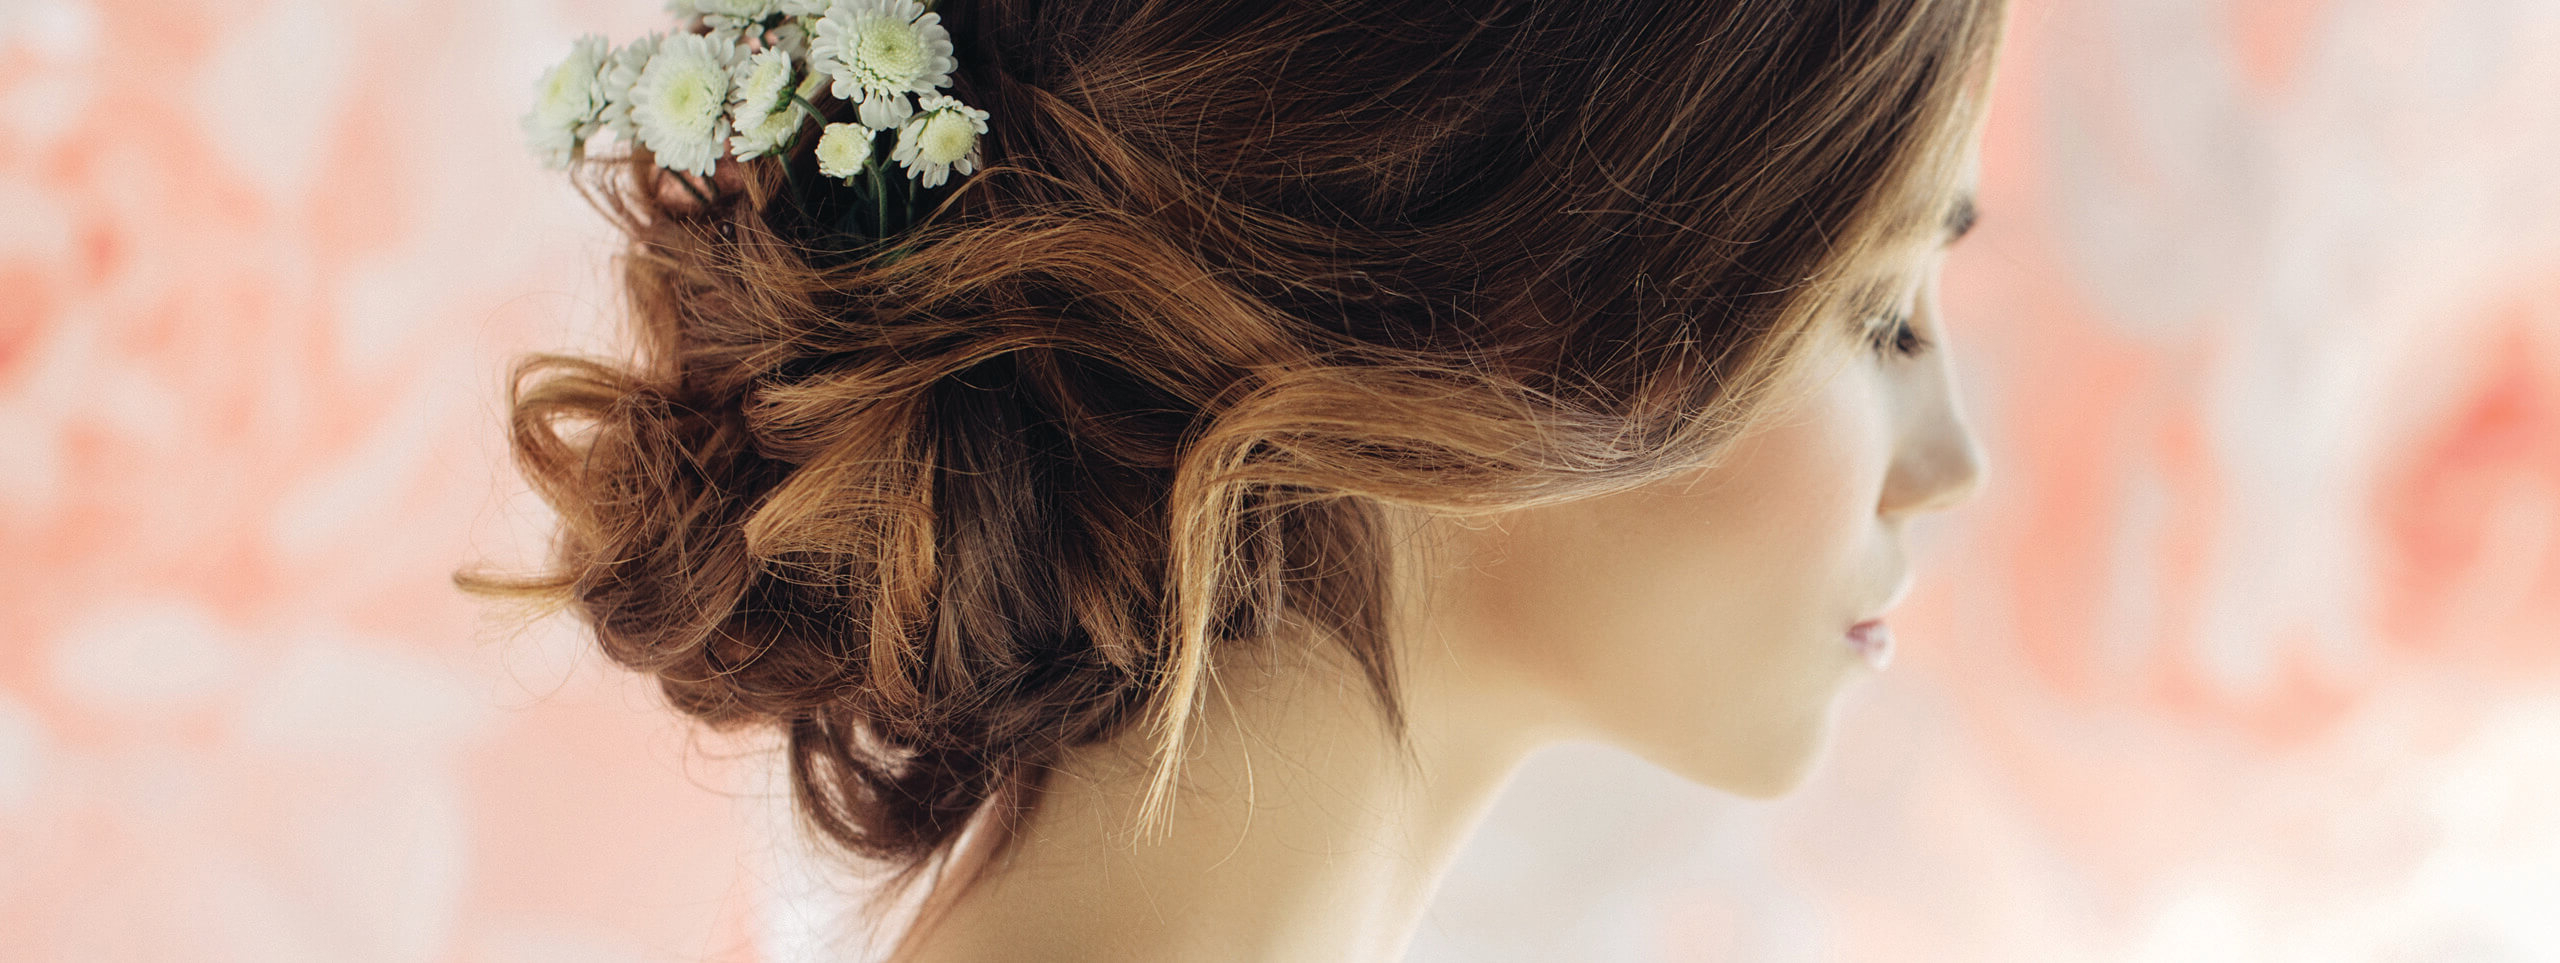 Recent Bridal Medium Hairstyles Regarding Wedding Hairstyles For Medium Hair (View 15 of 20)